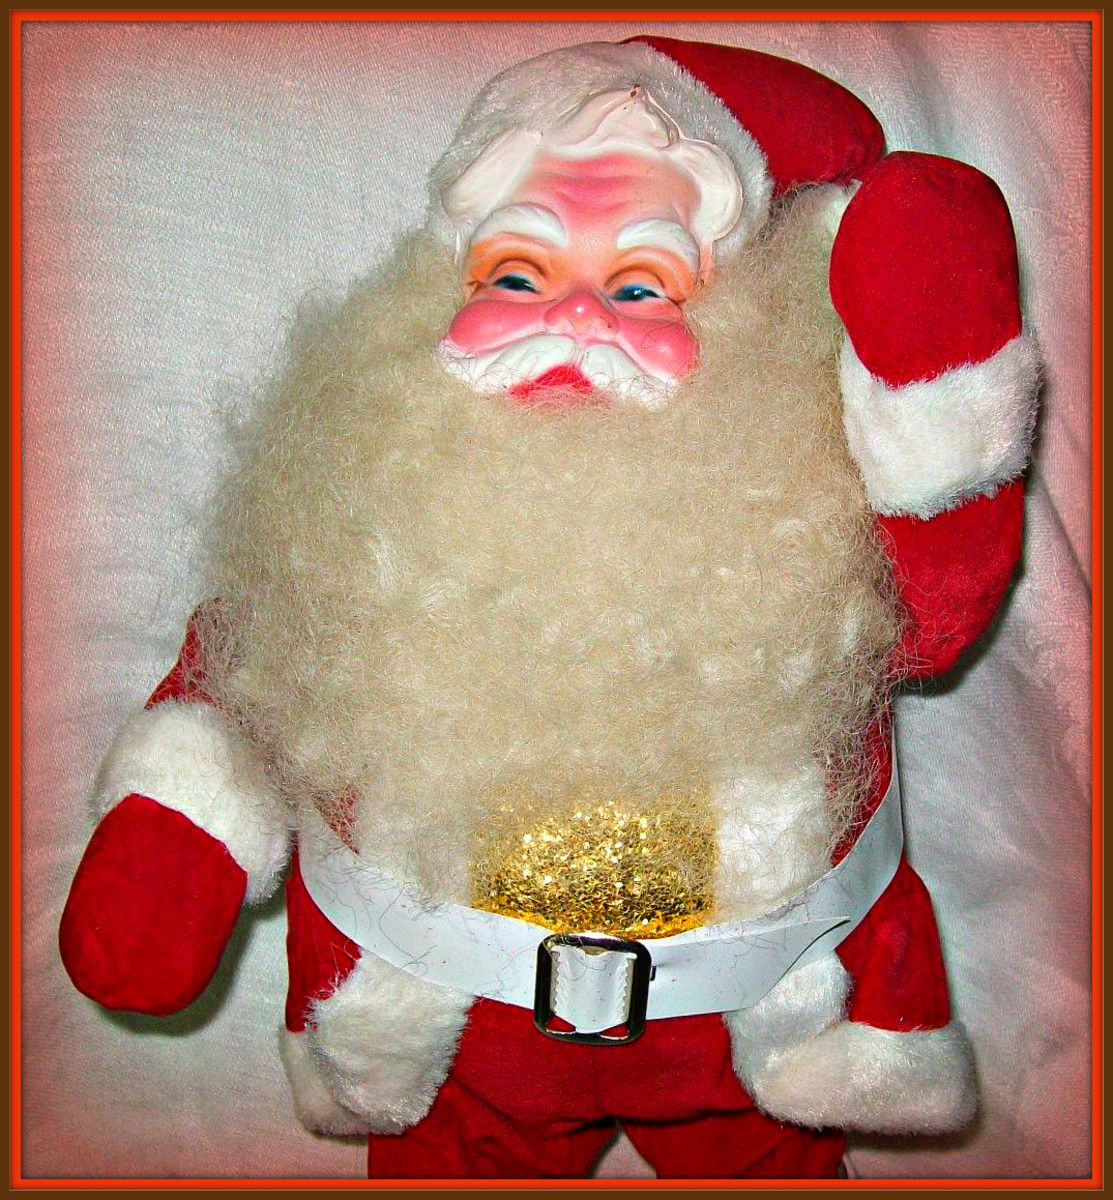 This vintage Santa measures about 14 inches tall. He is in his red velvet suit, with white trim, belt and boots. He is wearing a gold shirt under his coat.